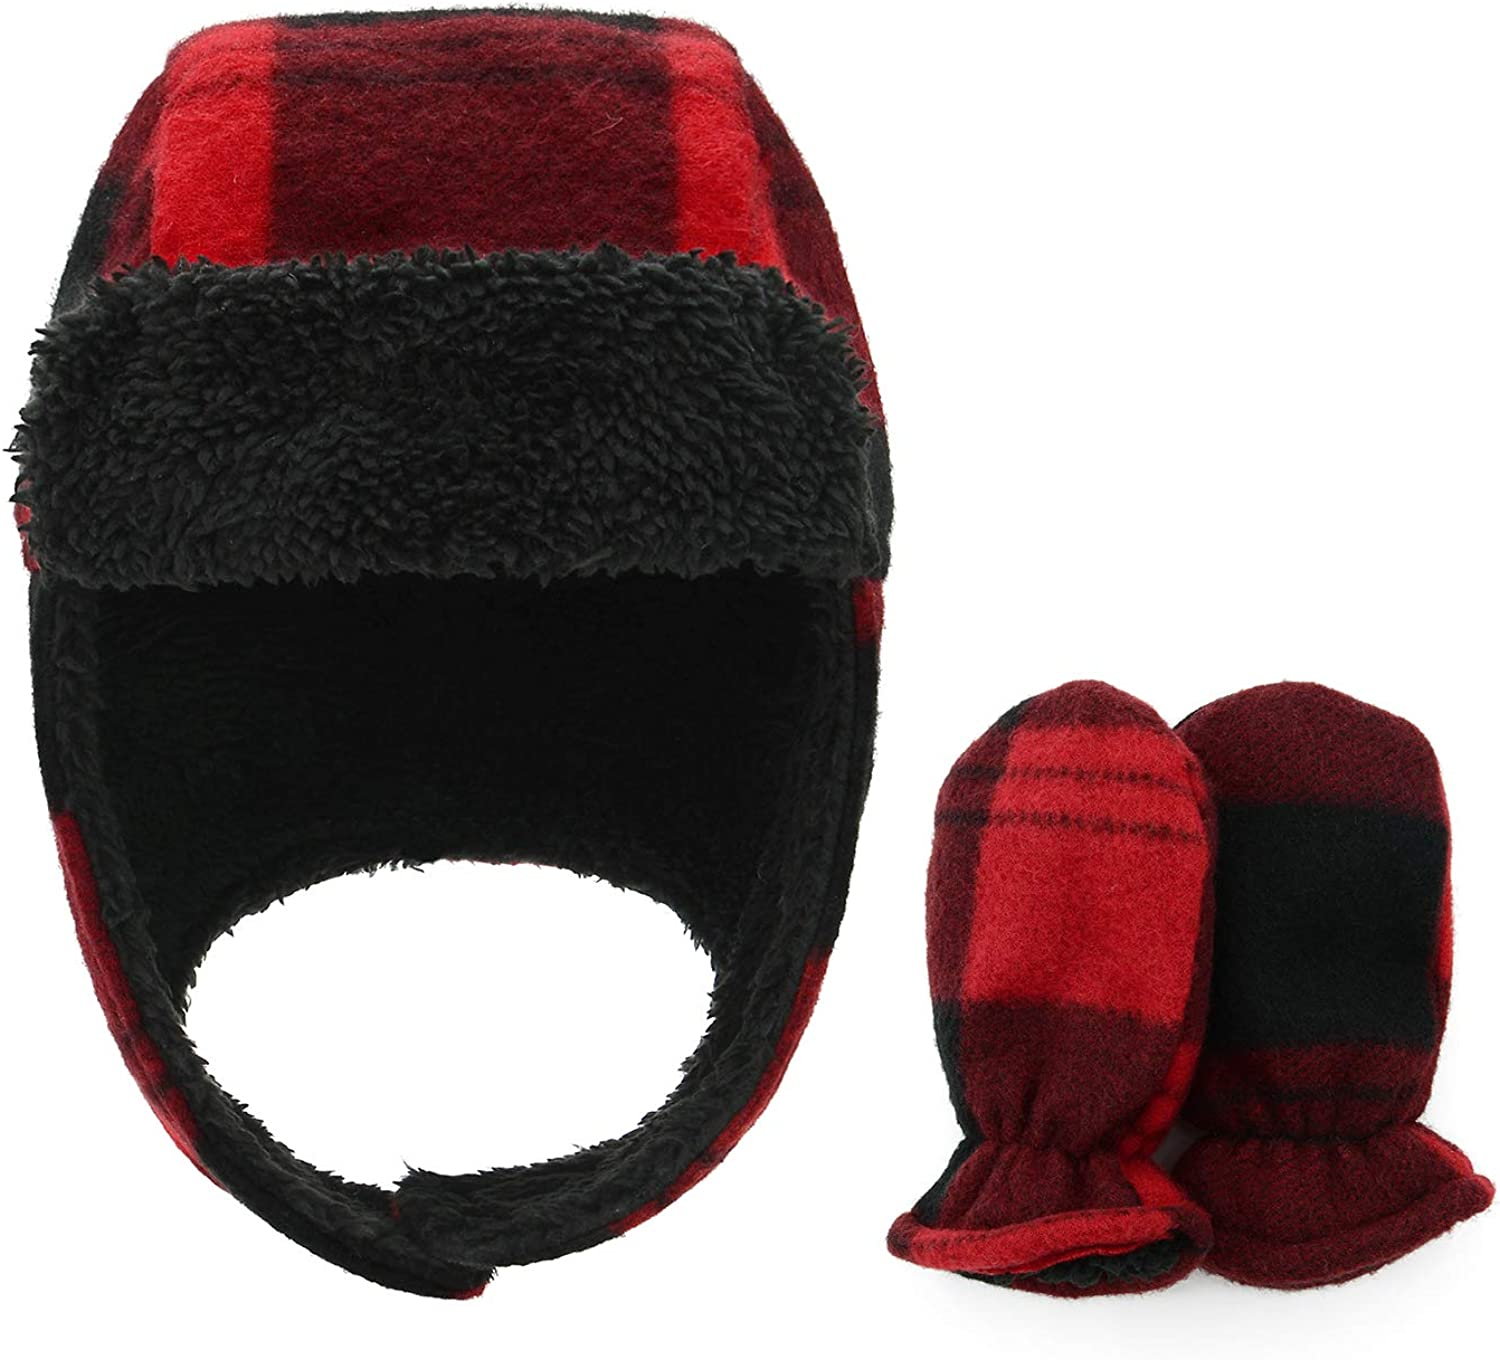 American Trends Baby Hat Winter Tuque Baby Beanie Cute Toddler Hats for Boys Girls Baby Gift